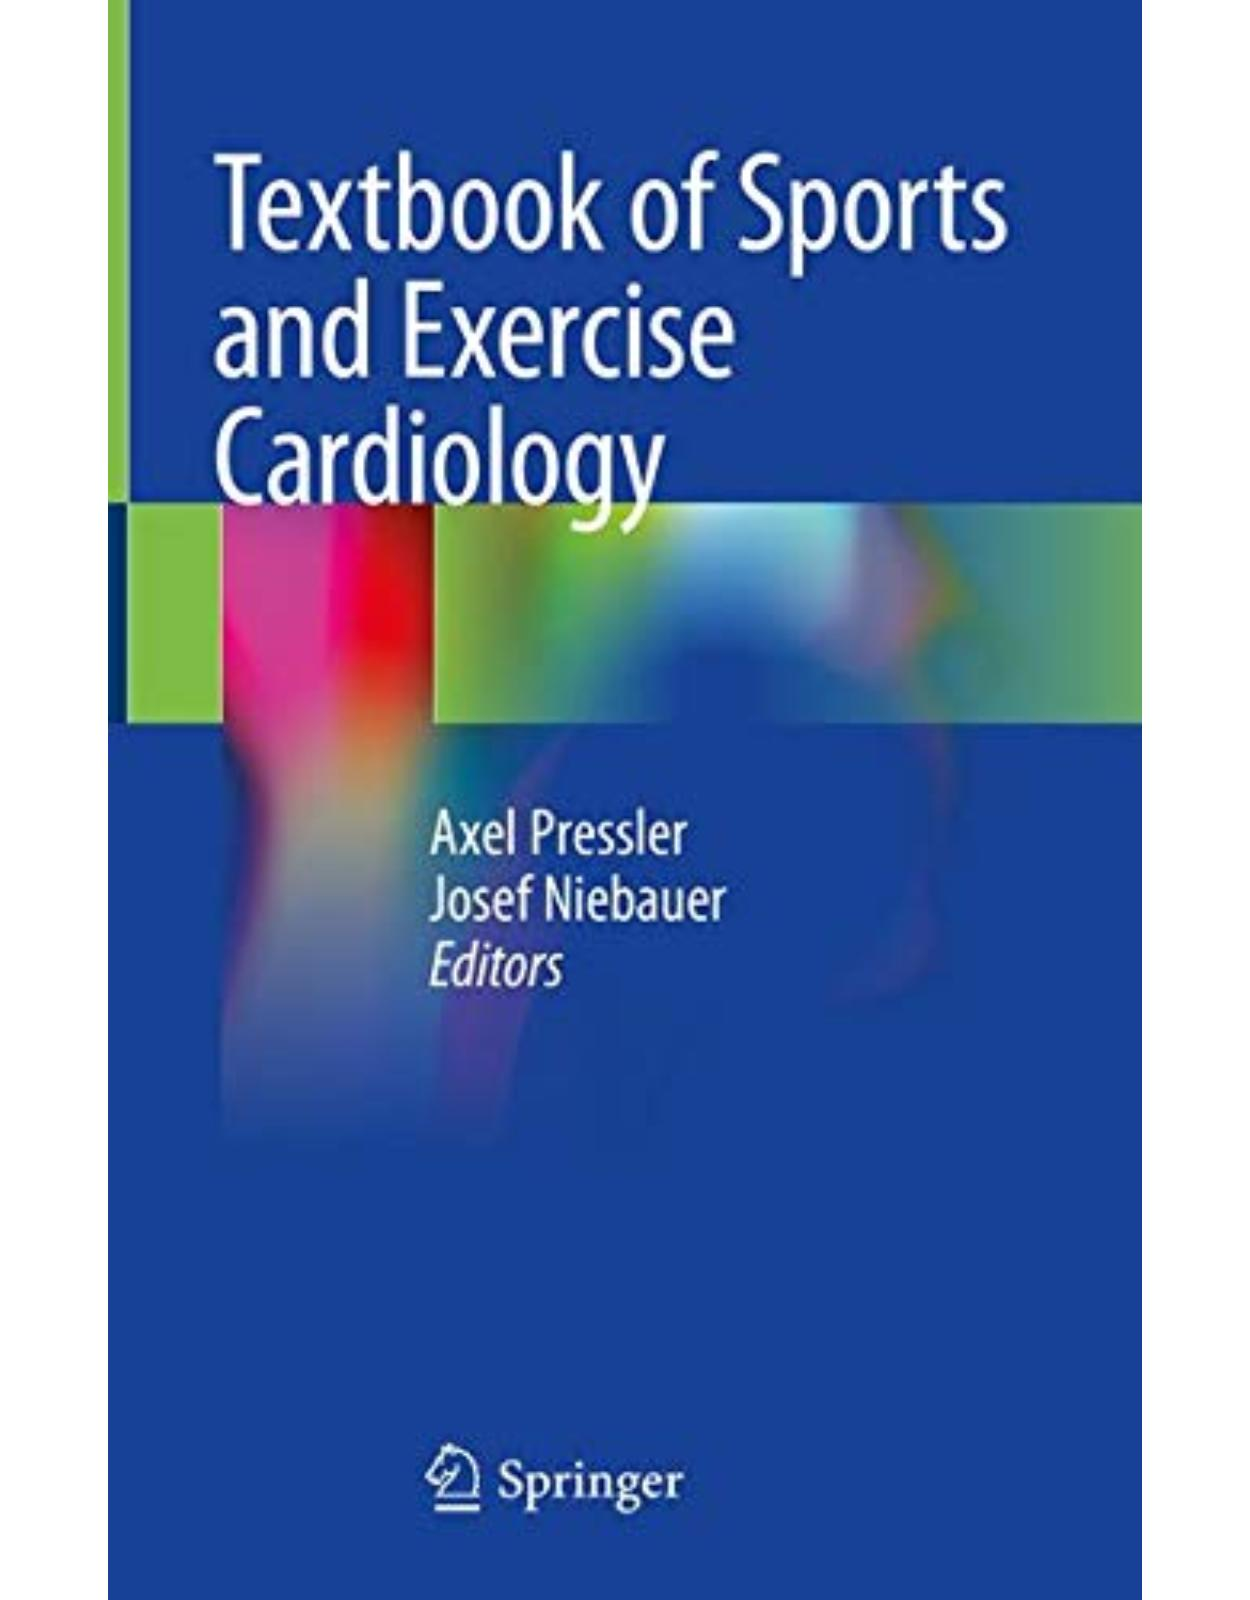 Textbook of Sports and Exercise Cardiology